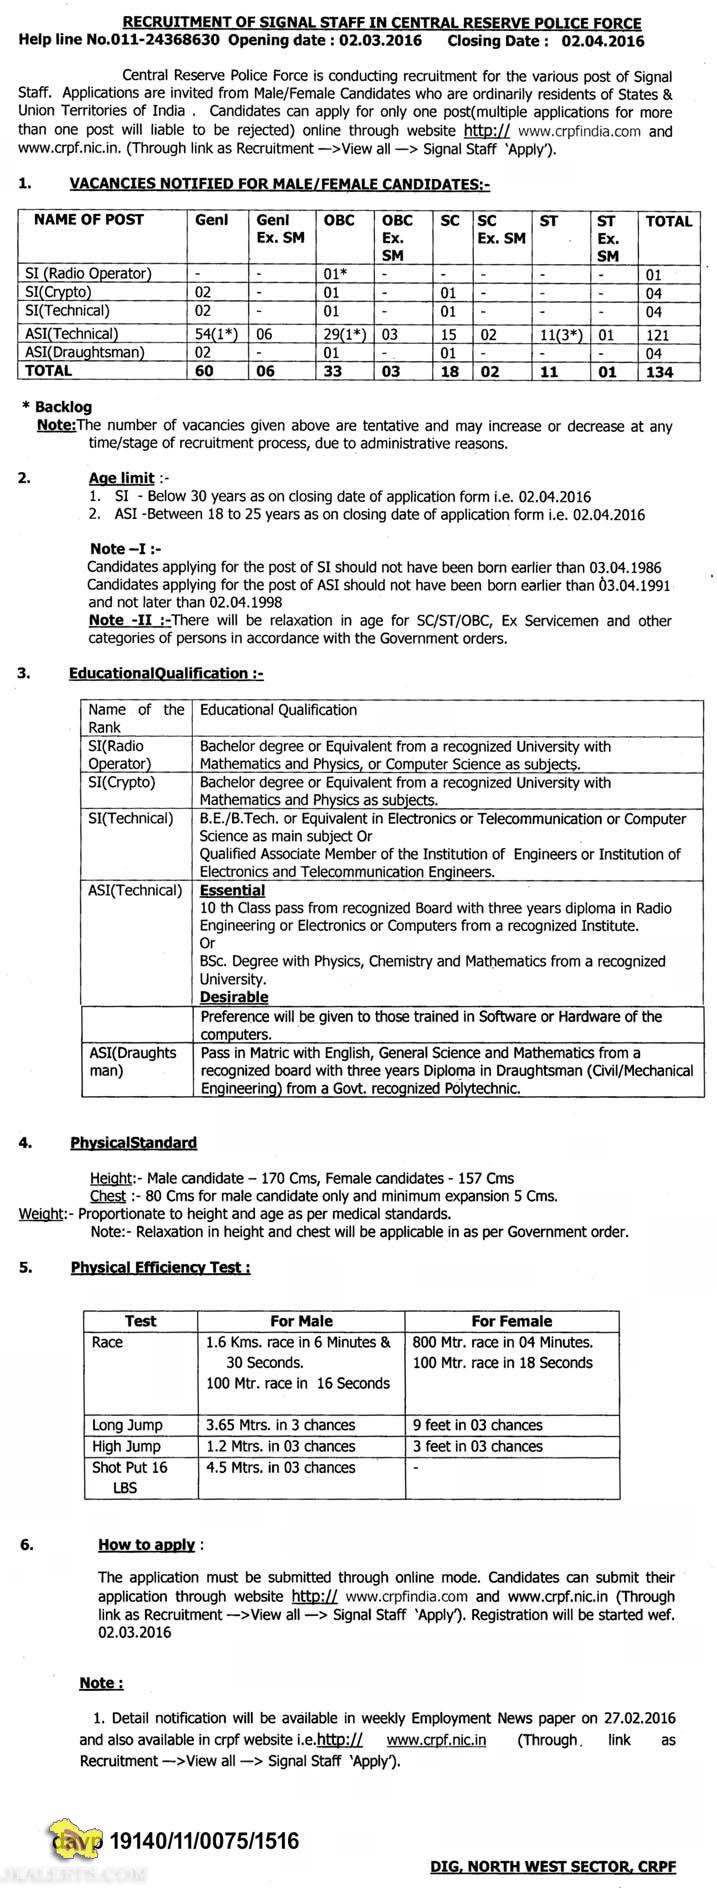 RECRUITMENT OF SIGNAL STAFF IN CENTRAL RESERVE POLICE FORCE